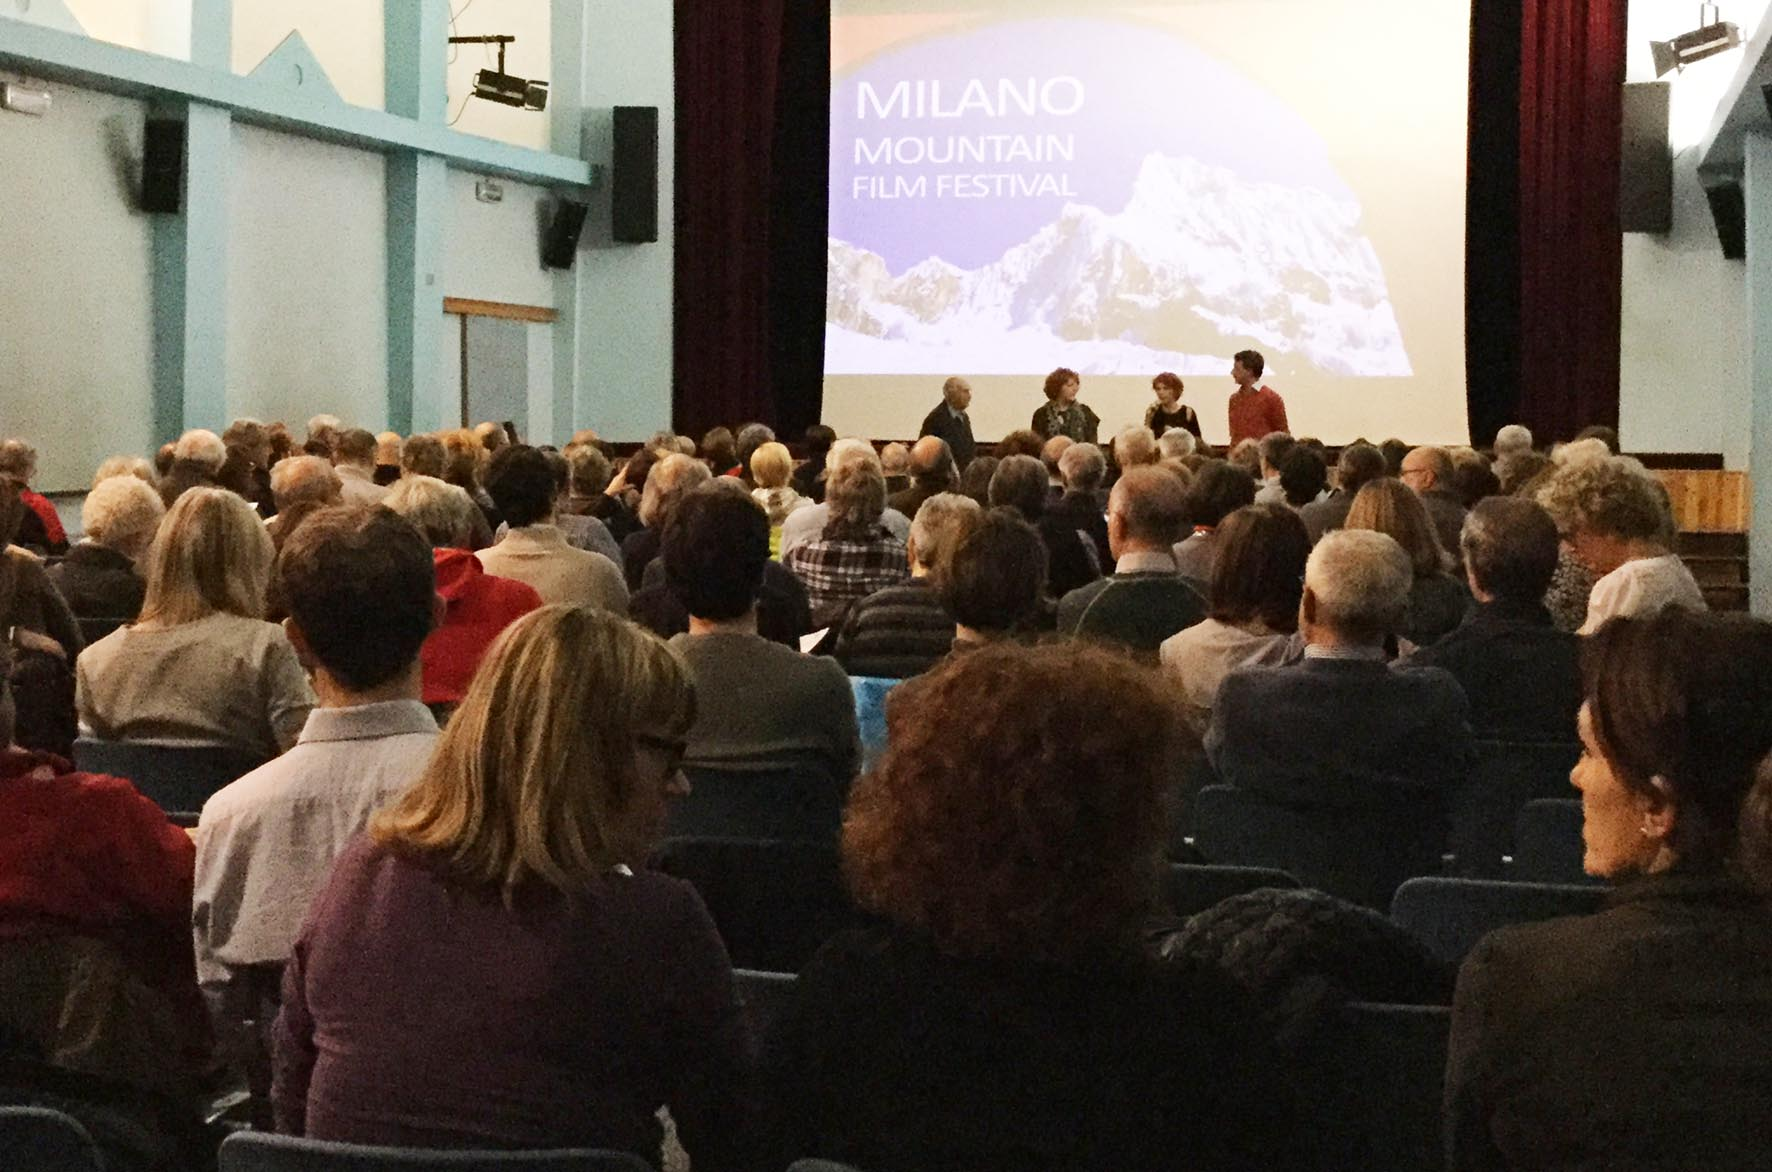 Milano Mountain Film Festival